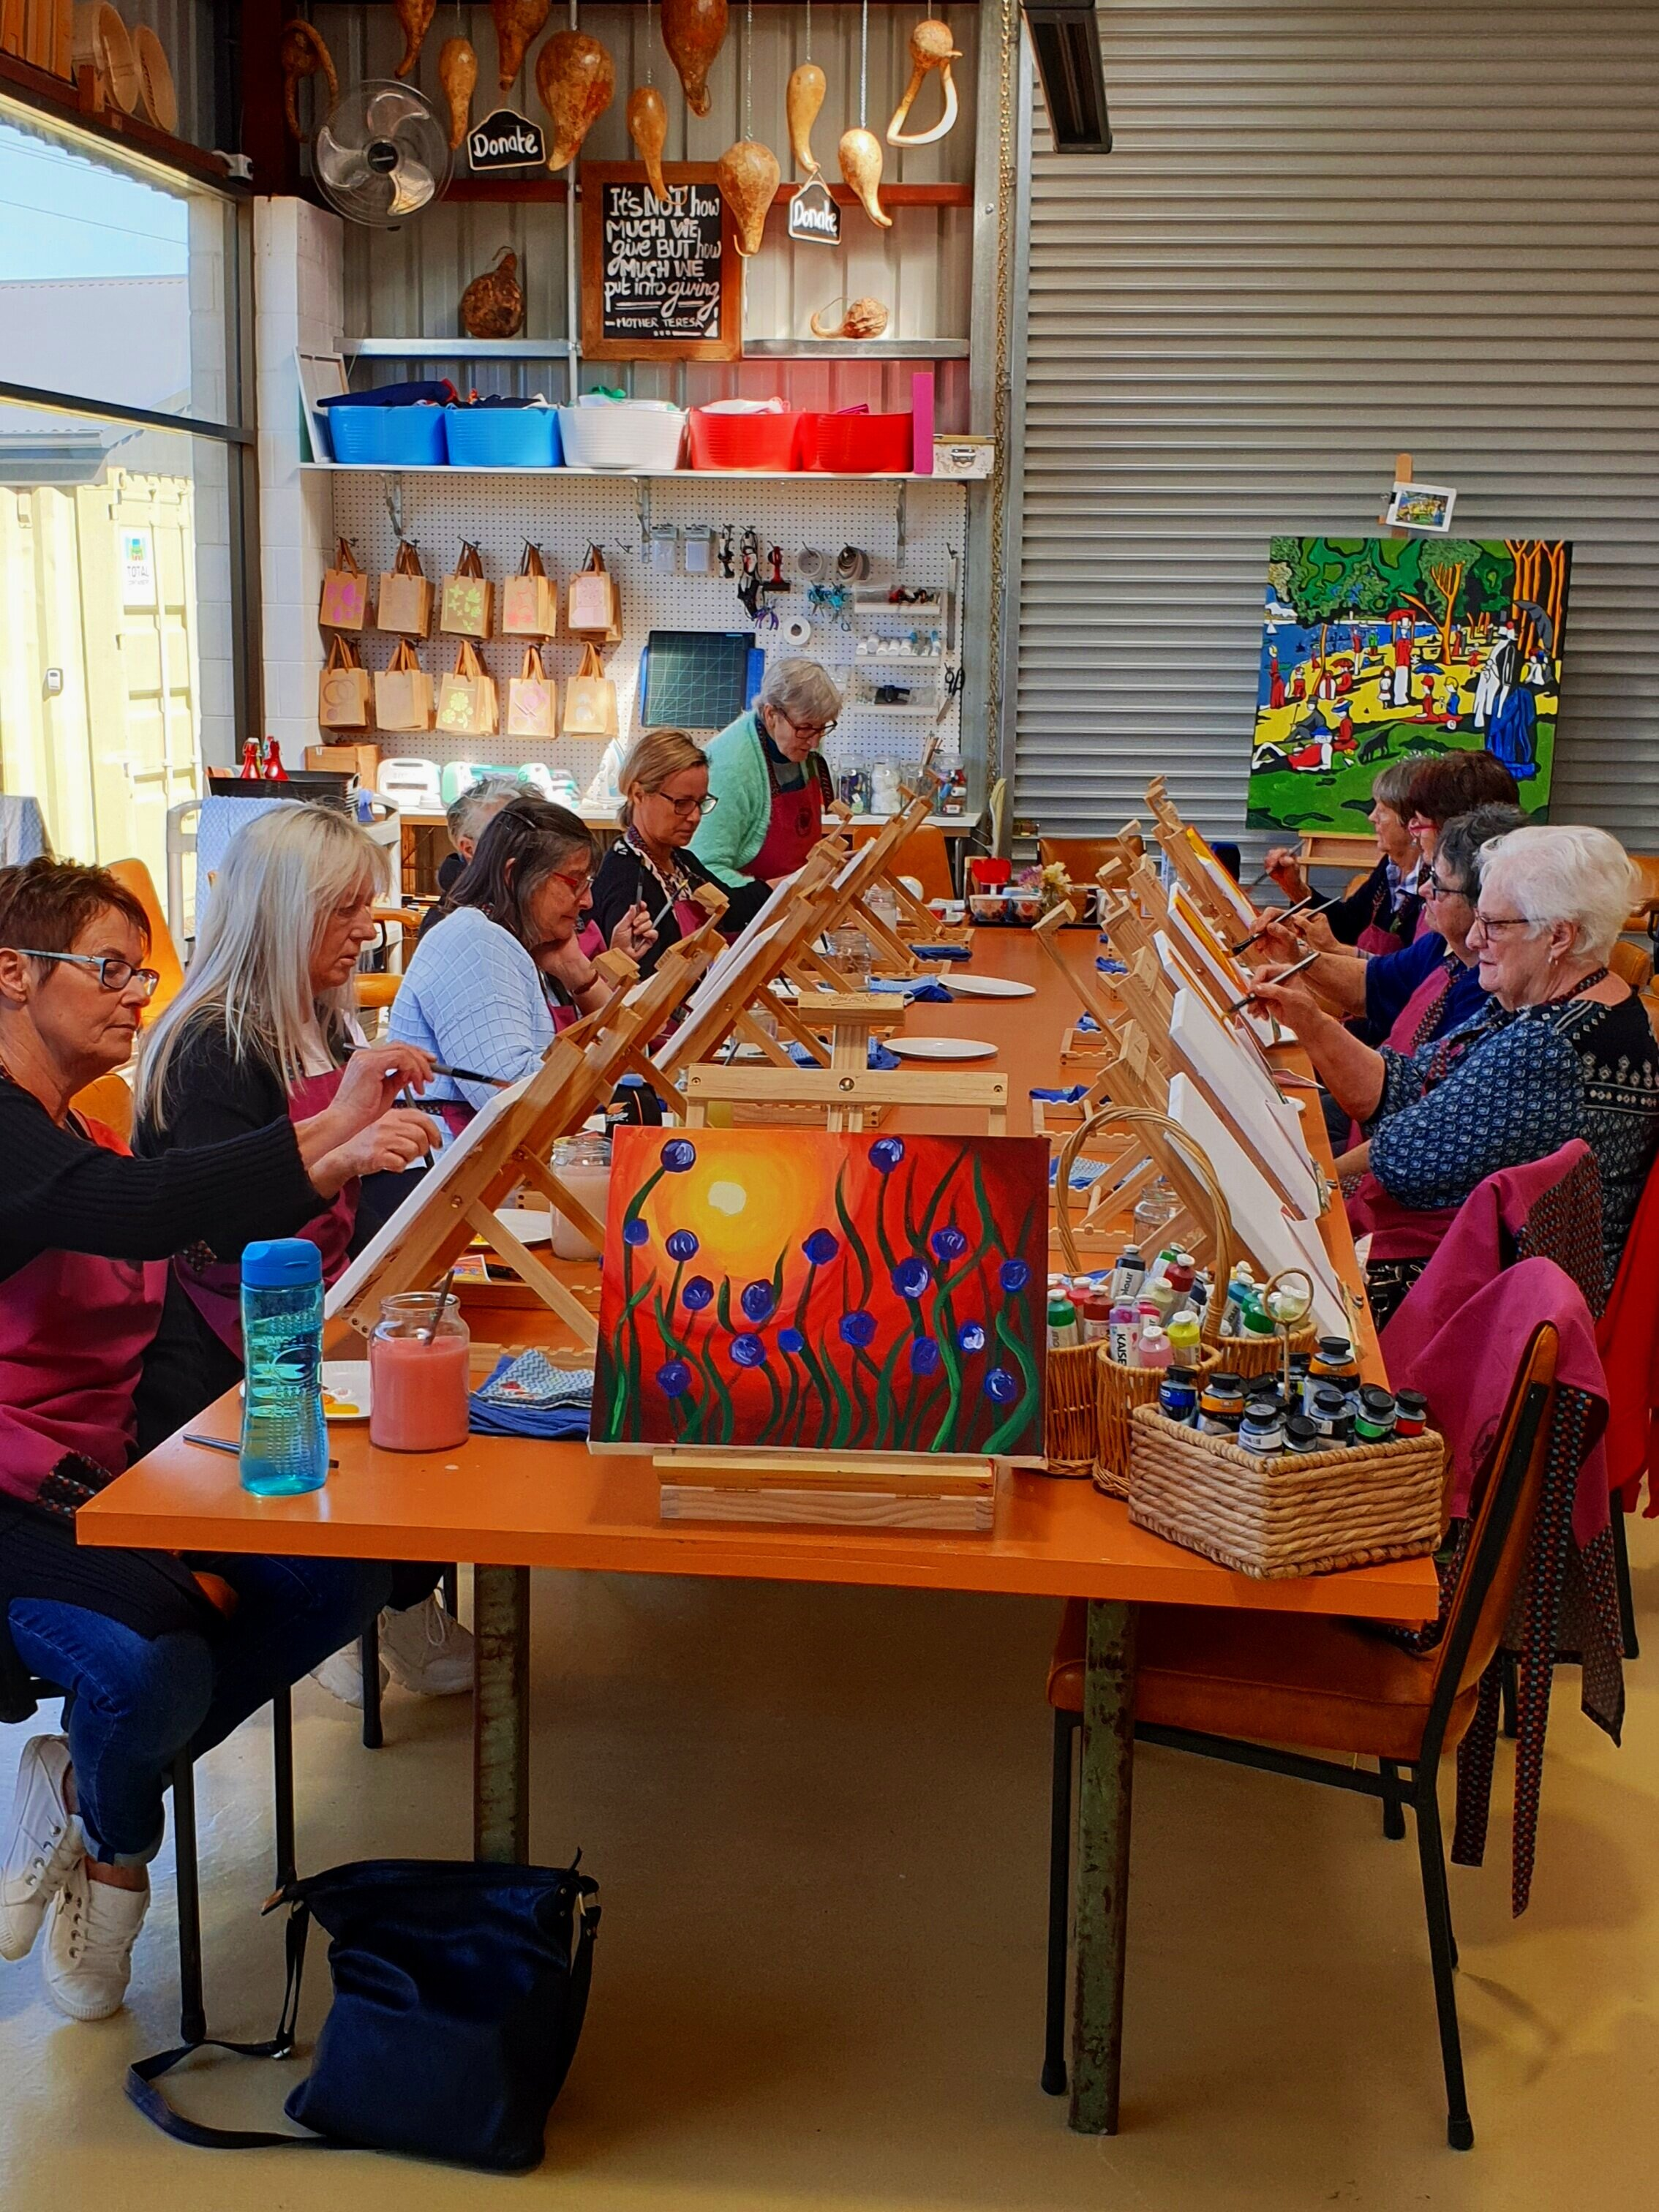 GROUP BOOKINGS…The studio can be booked for sessions run by Trish, the owner of Create Geelong, as a guided creative and social time. Bring some snacks and drinks and enjoy some well earned artistic pleasures in a relaxed supportive space. -